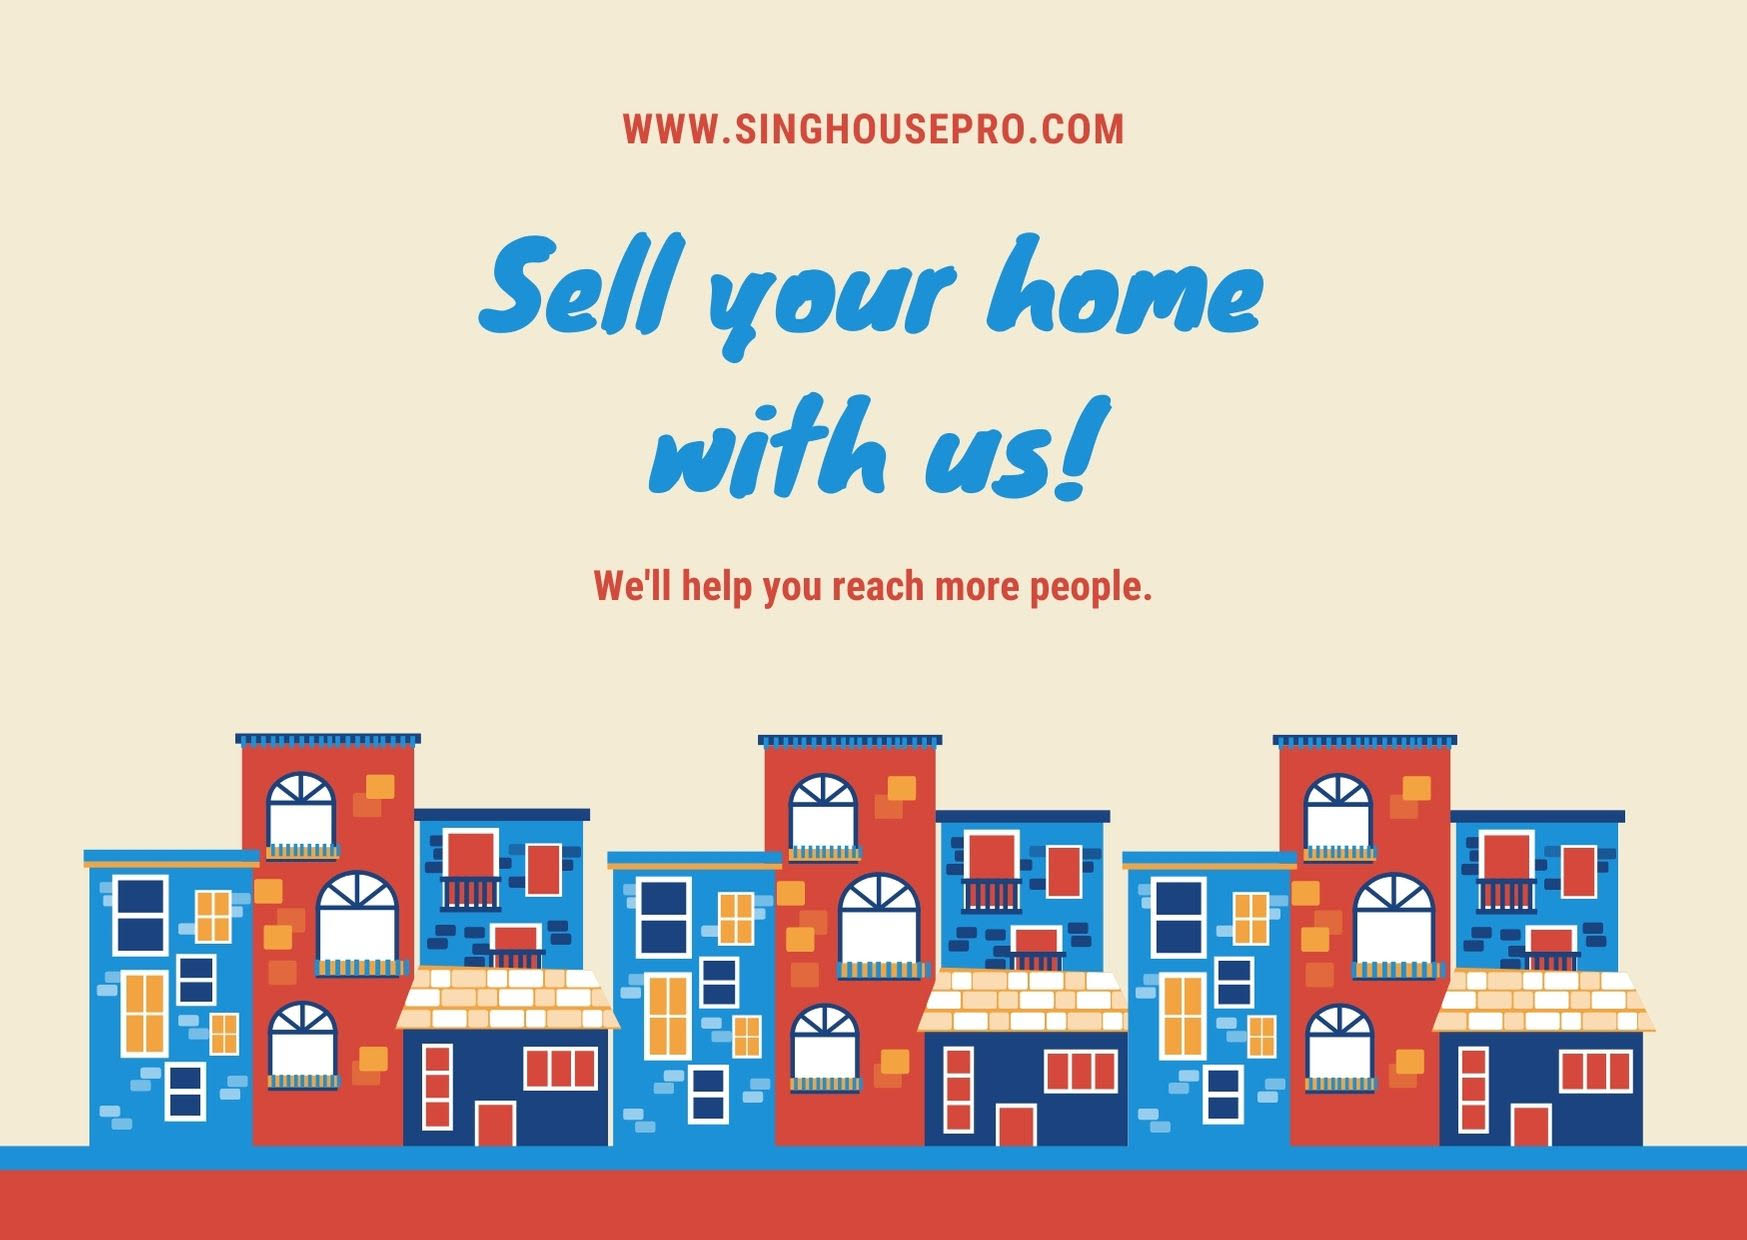 Best Tips For Property Developers on Selling Your Property in Singapore Quickly